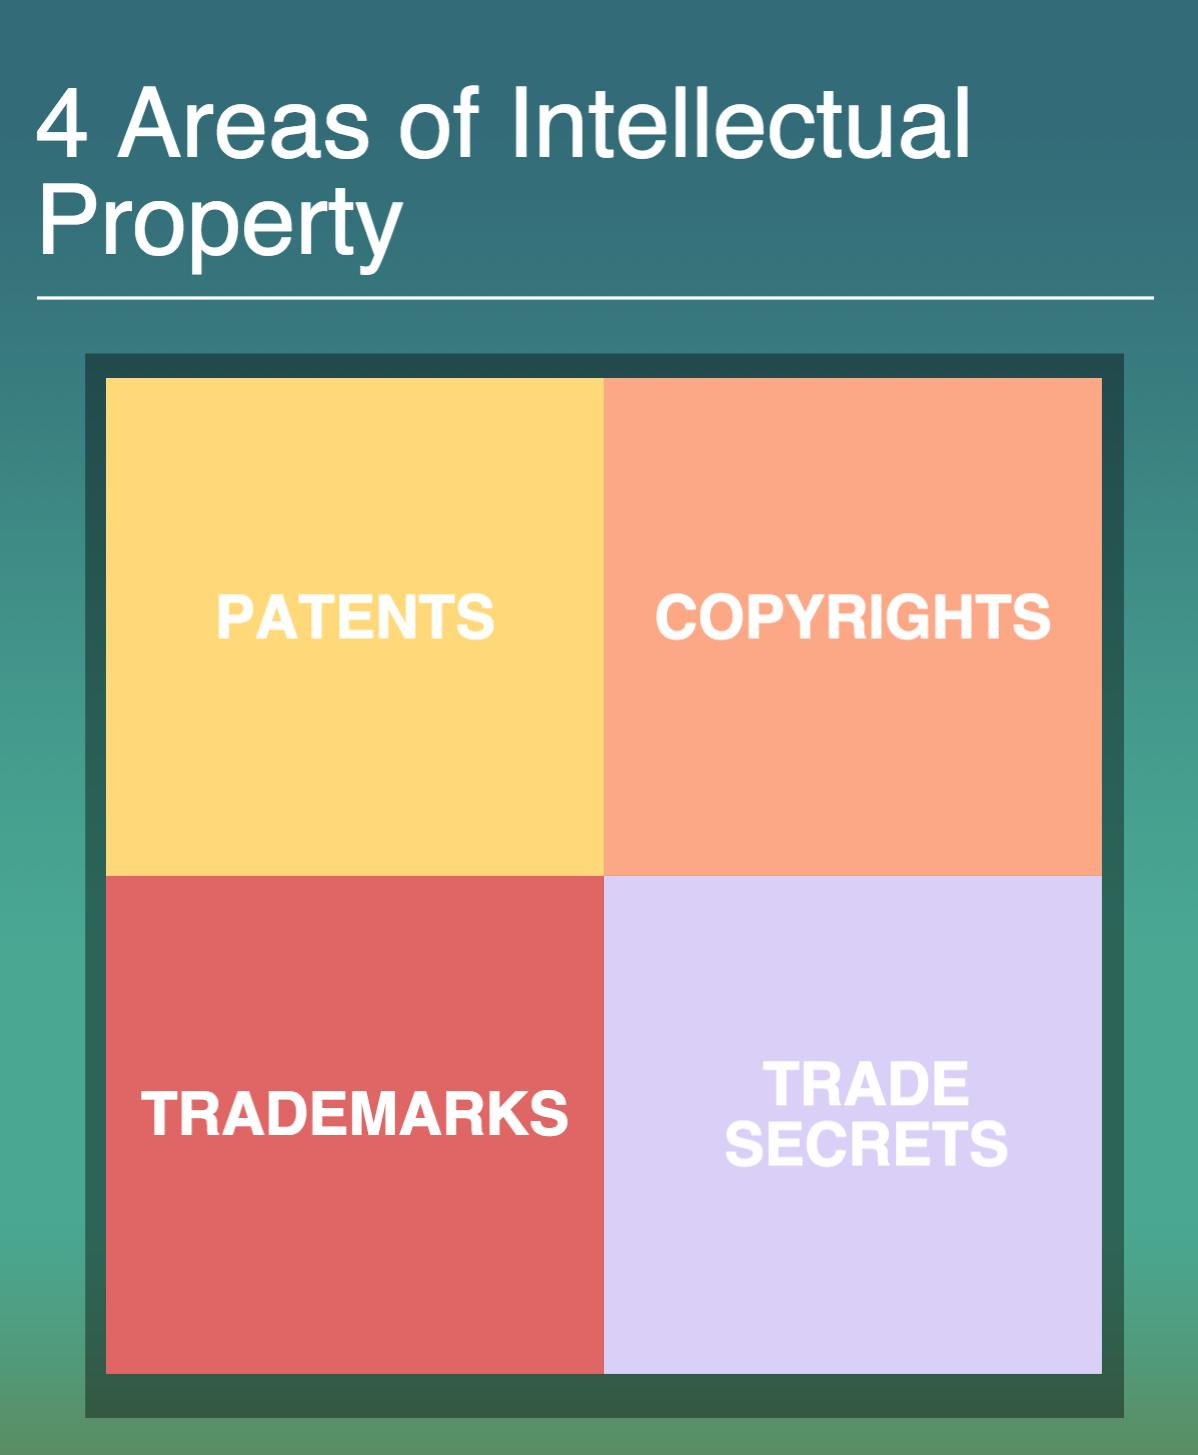 Itellectual Property: Intellectual Property